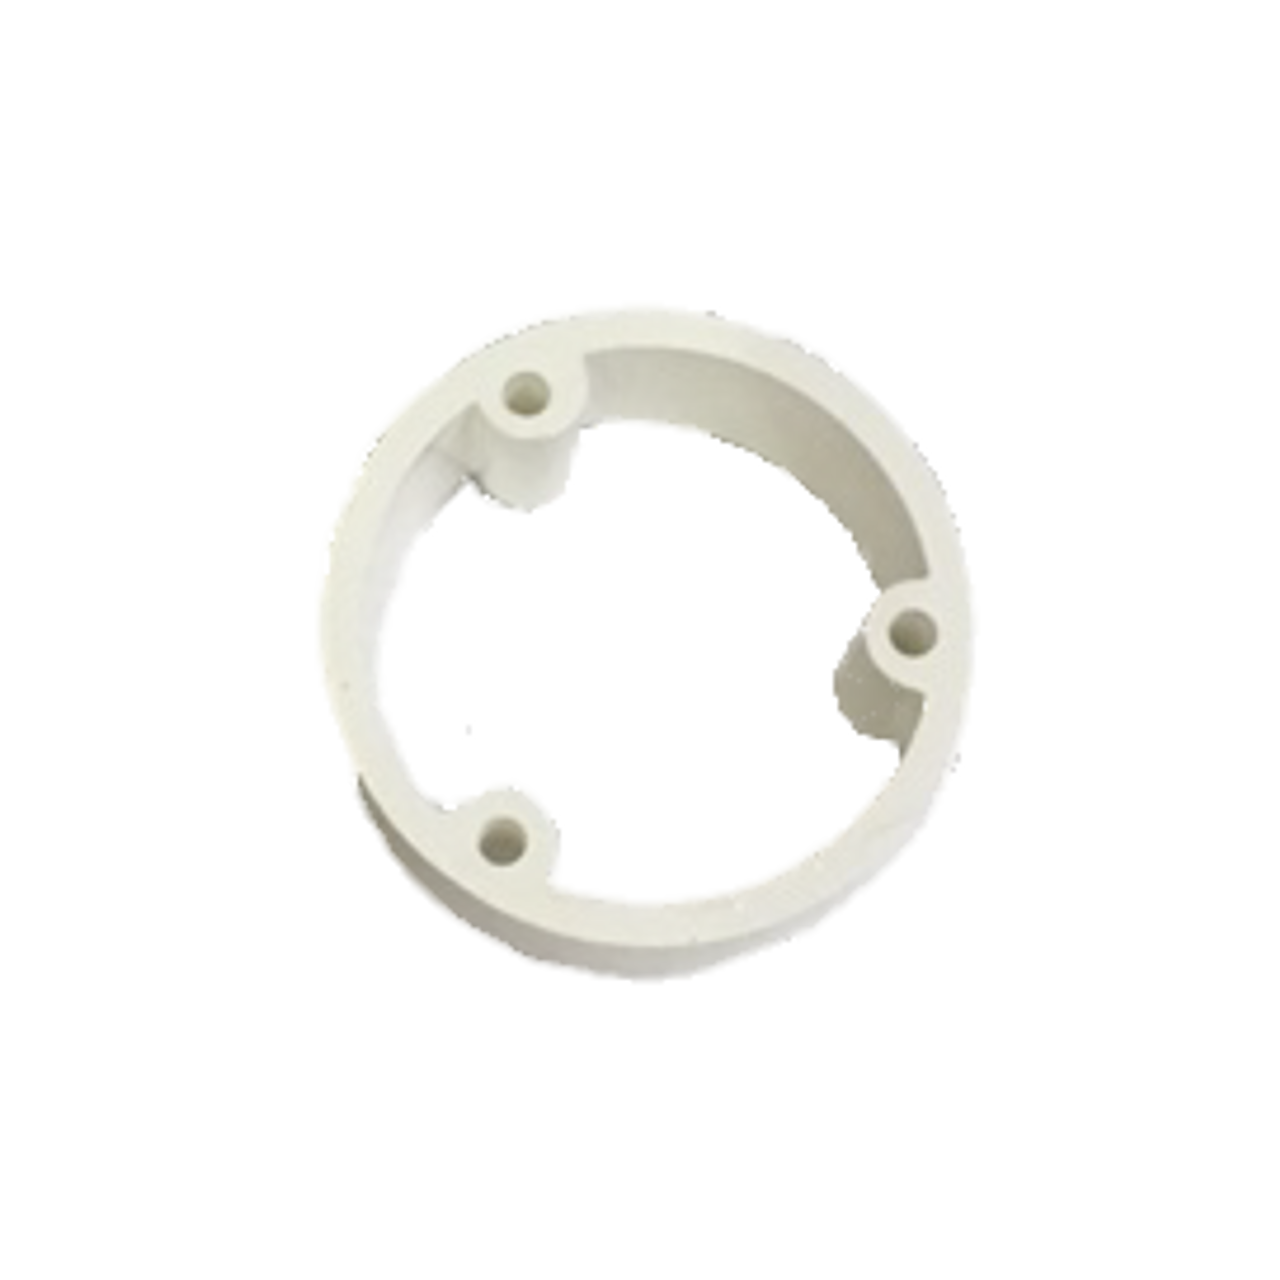 Included spacer adapter for flat mount